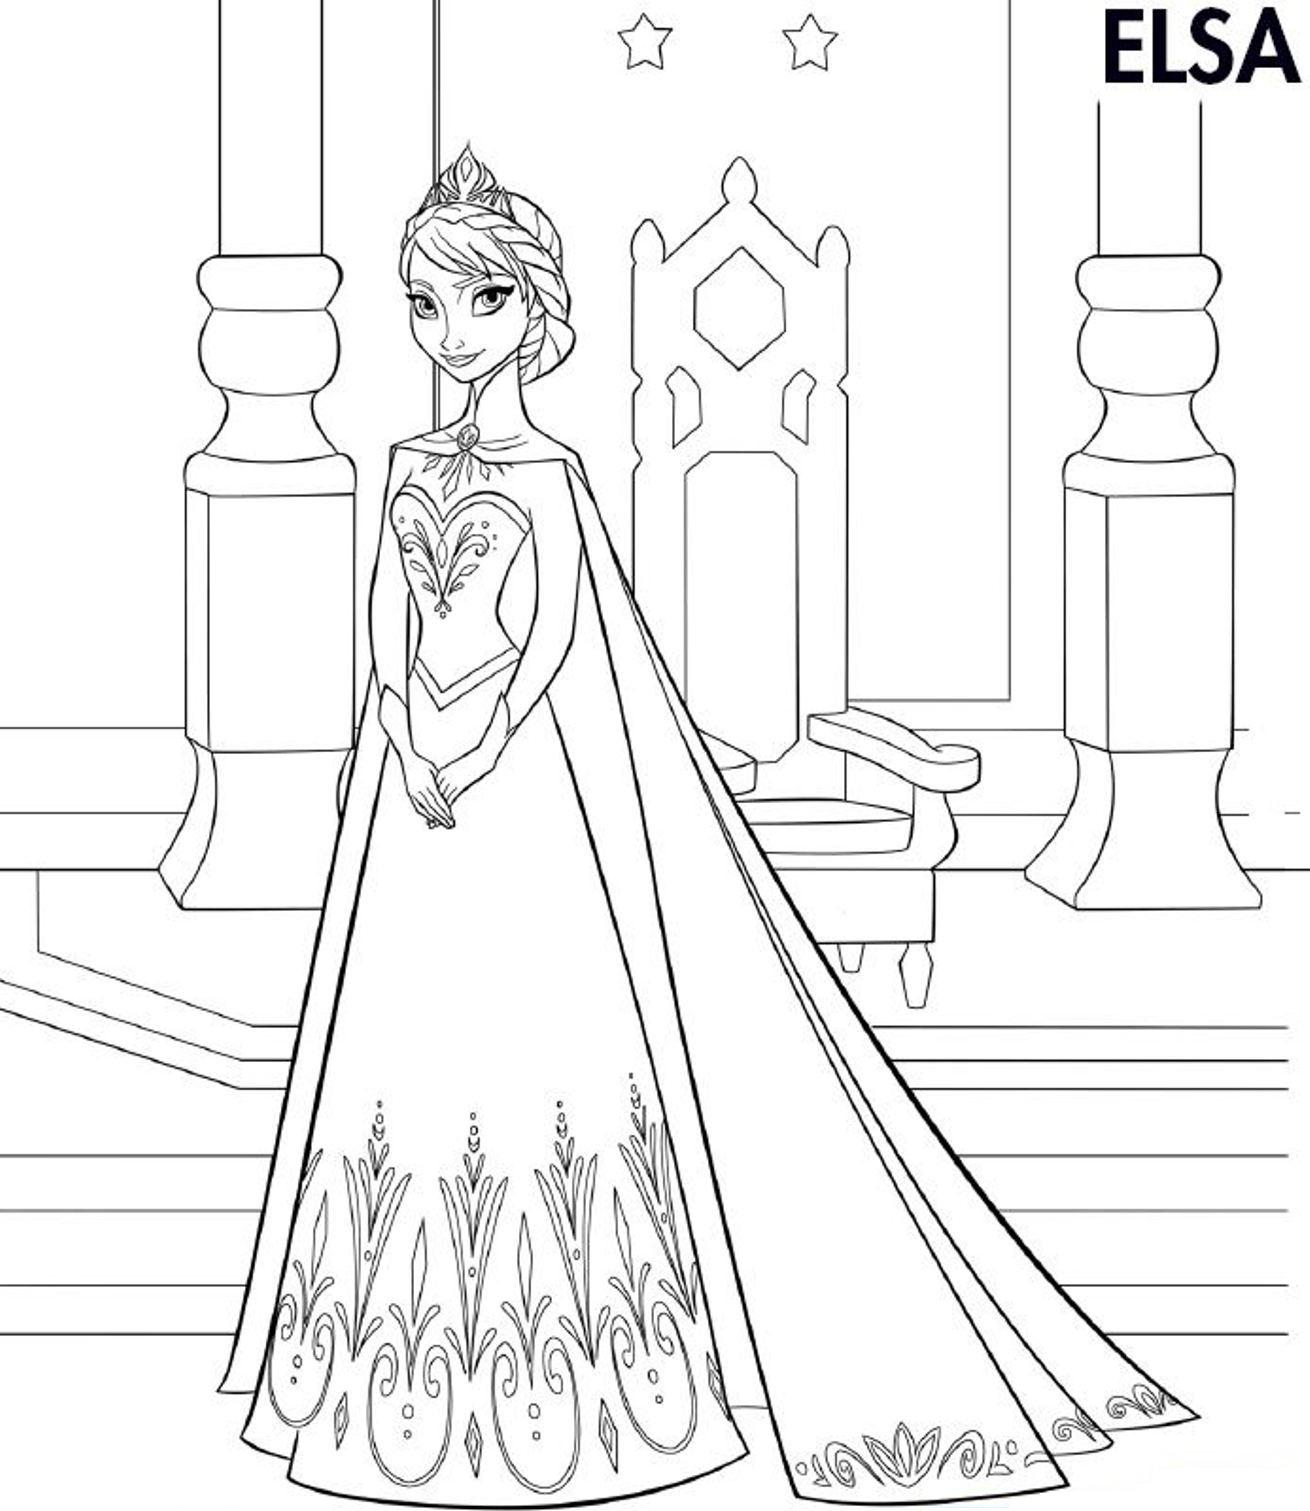 1310x1511 Elsa Frozen Coloring Page Coloring Pages for Kids Pinterest